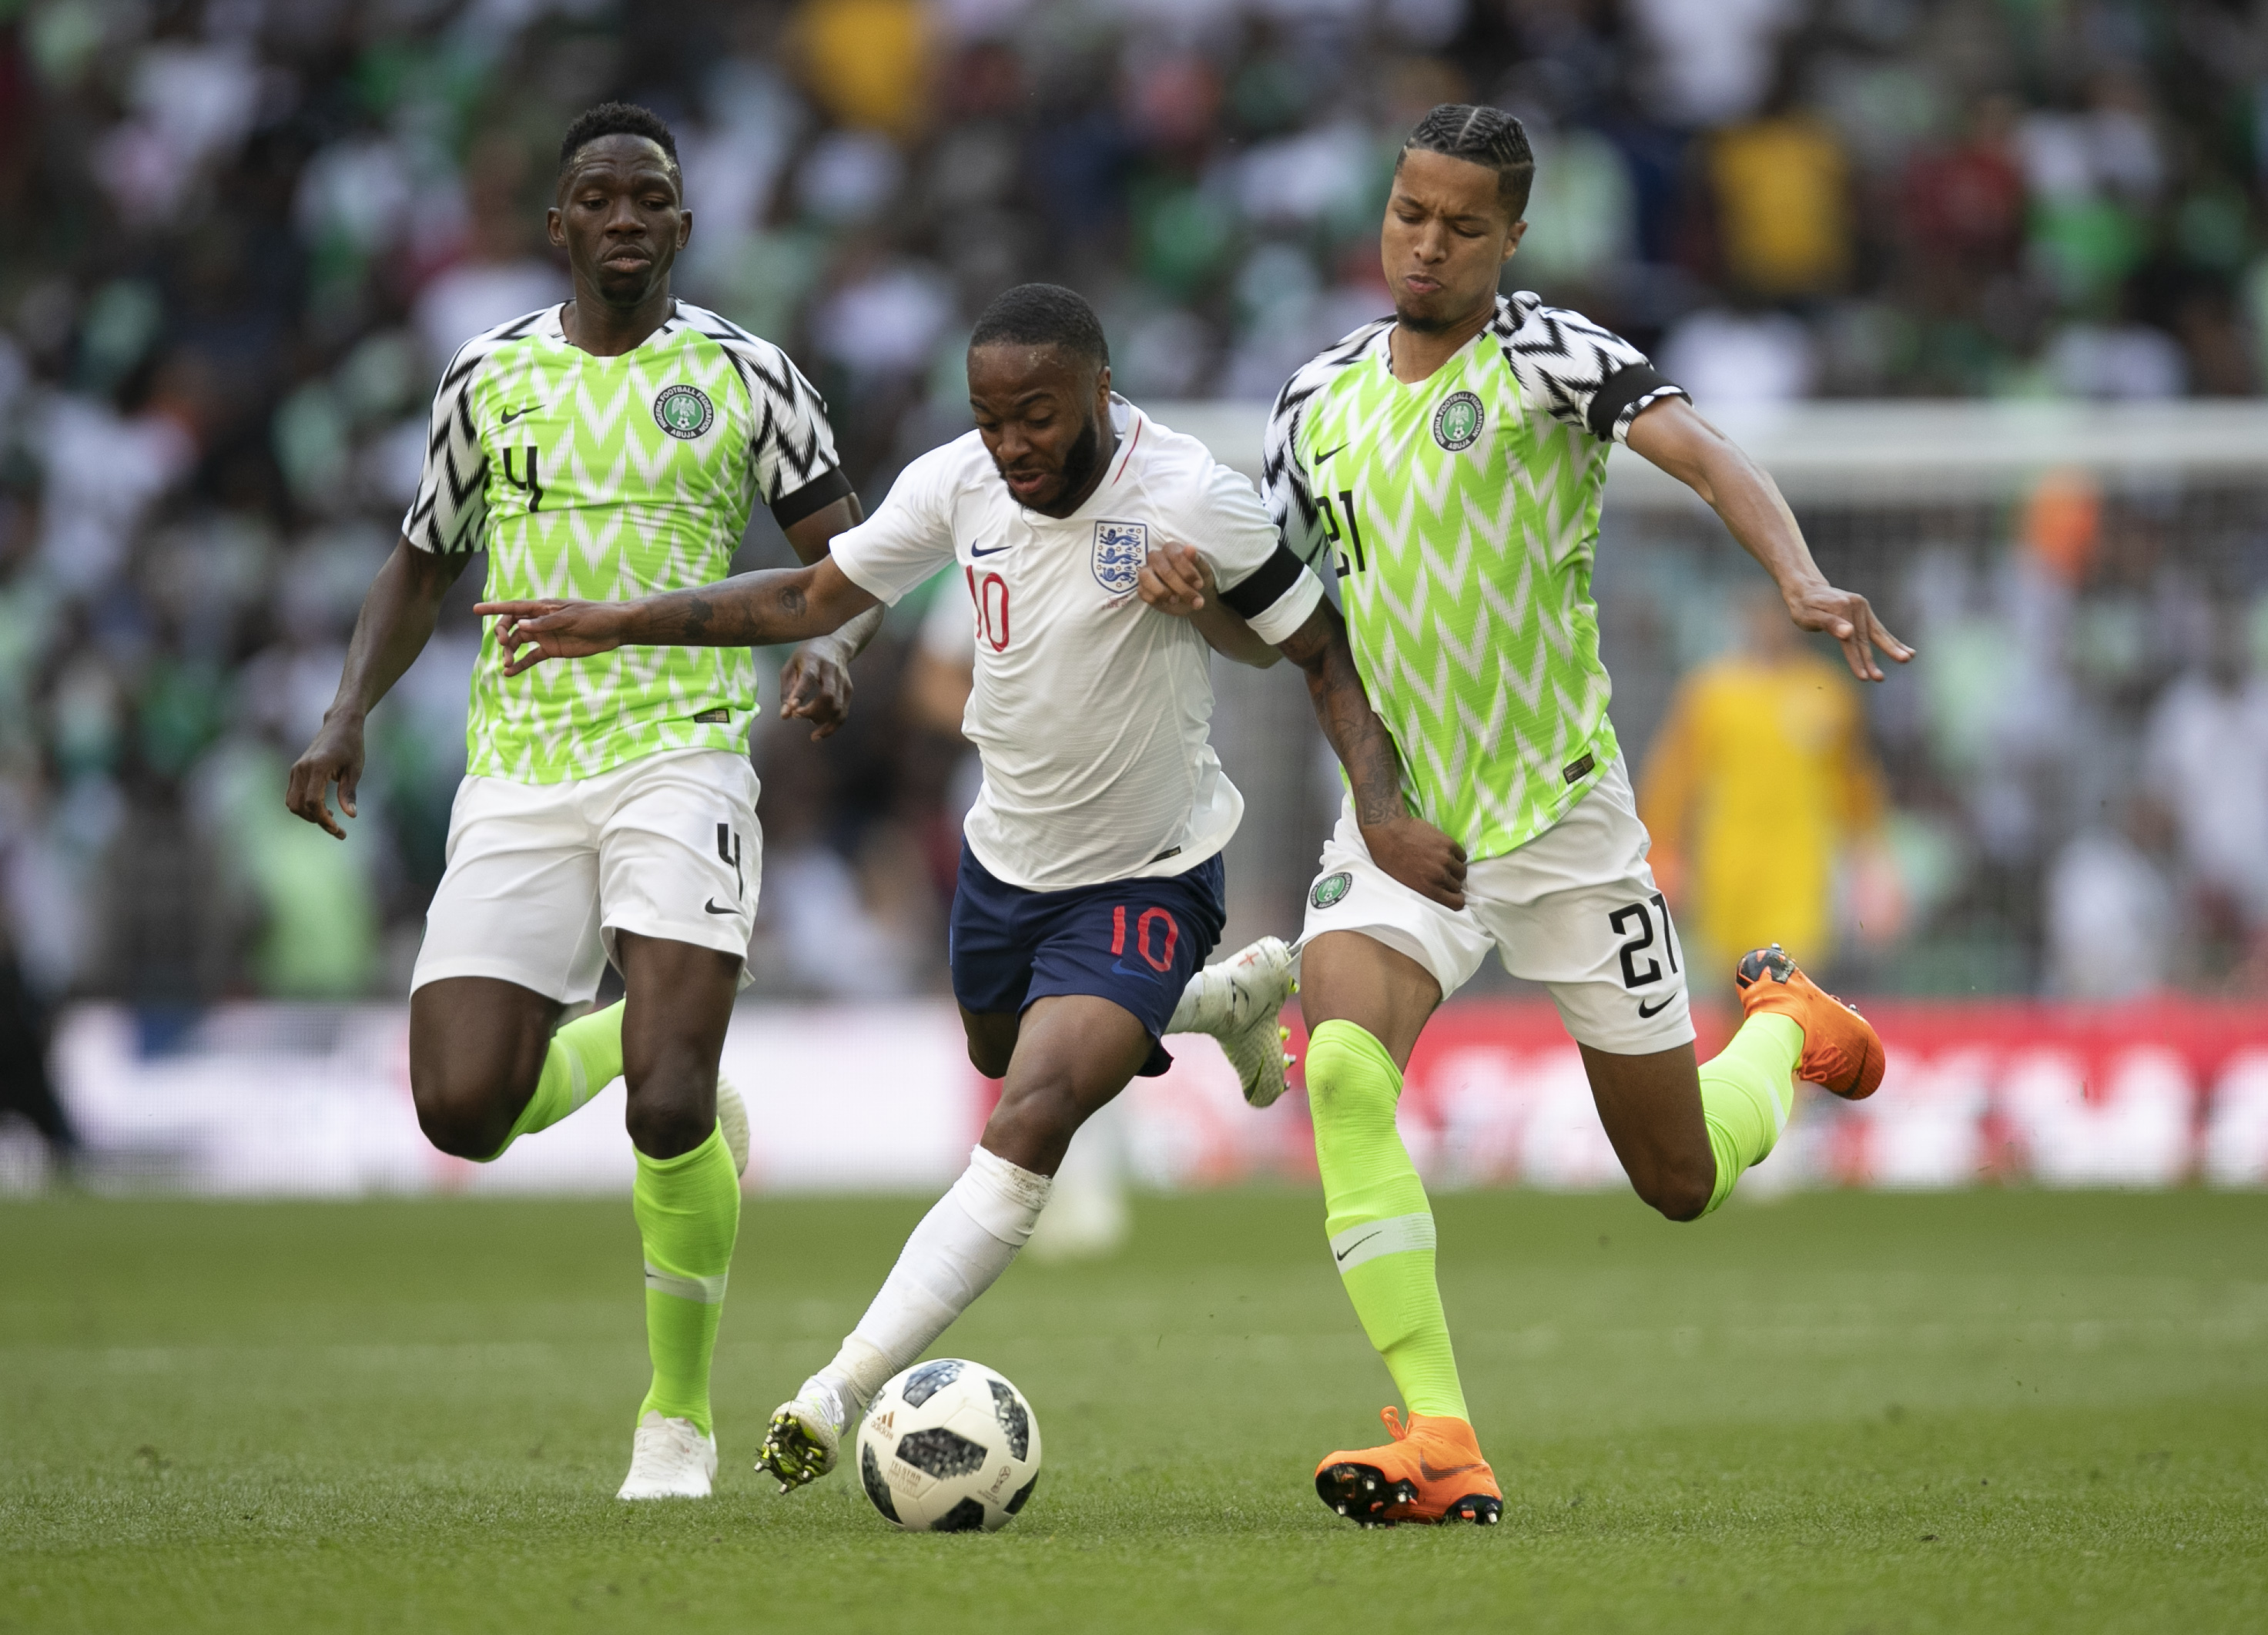 Nigeria s Travel Outfits For The World Cup Might Just Be The Coolest ... 748a55876